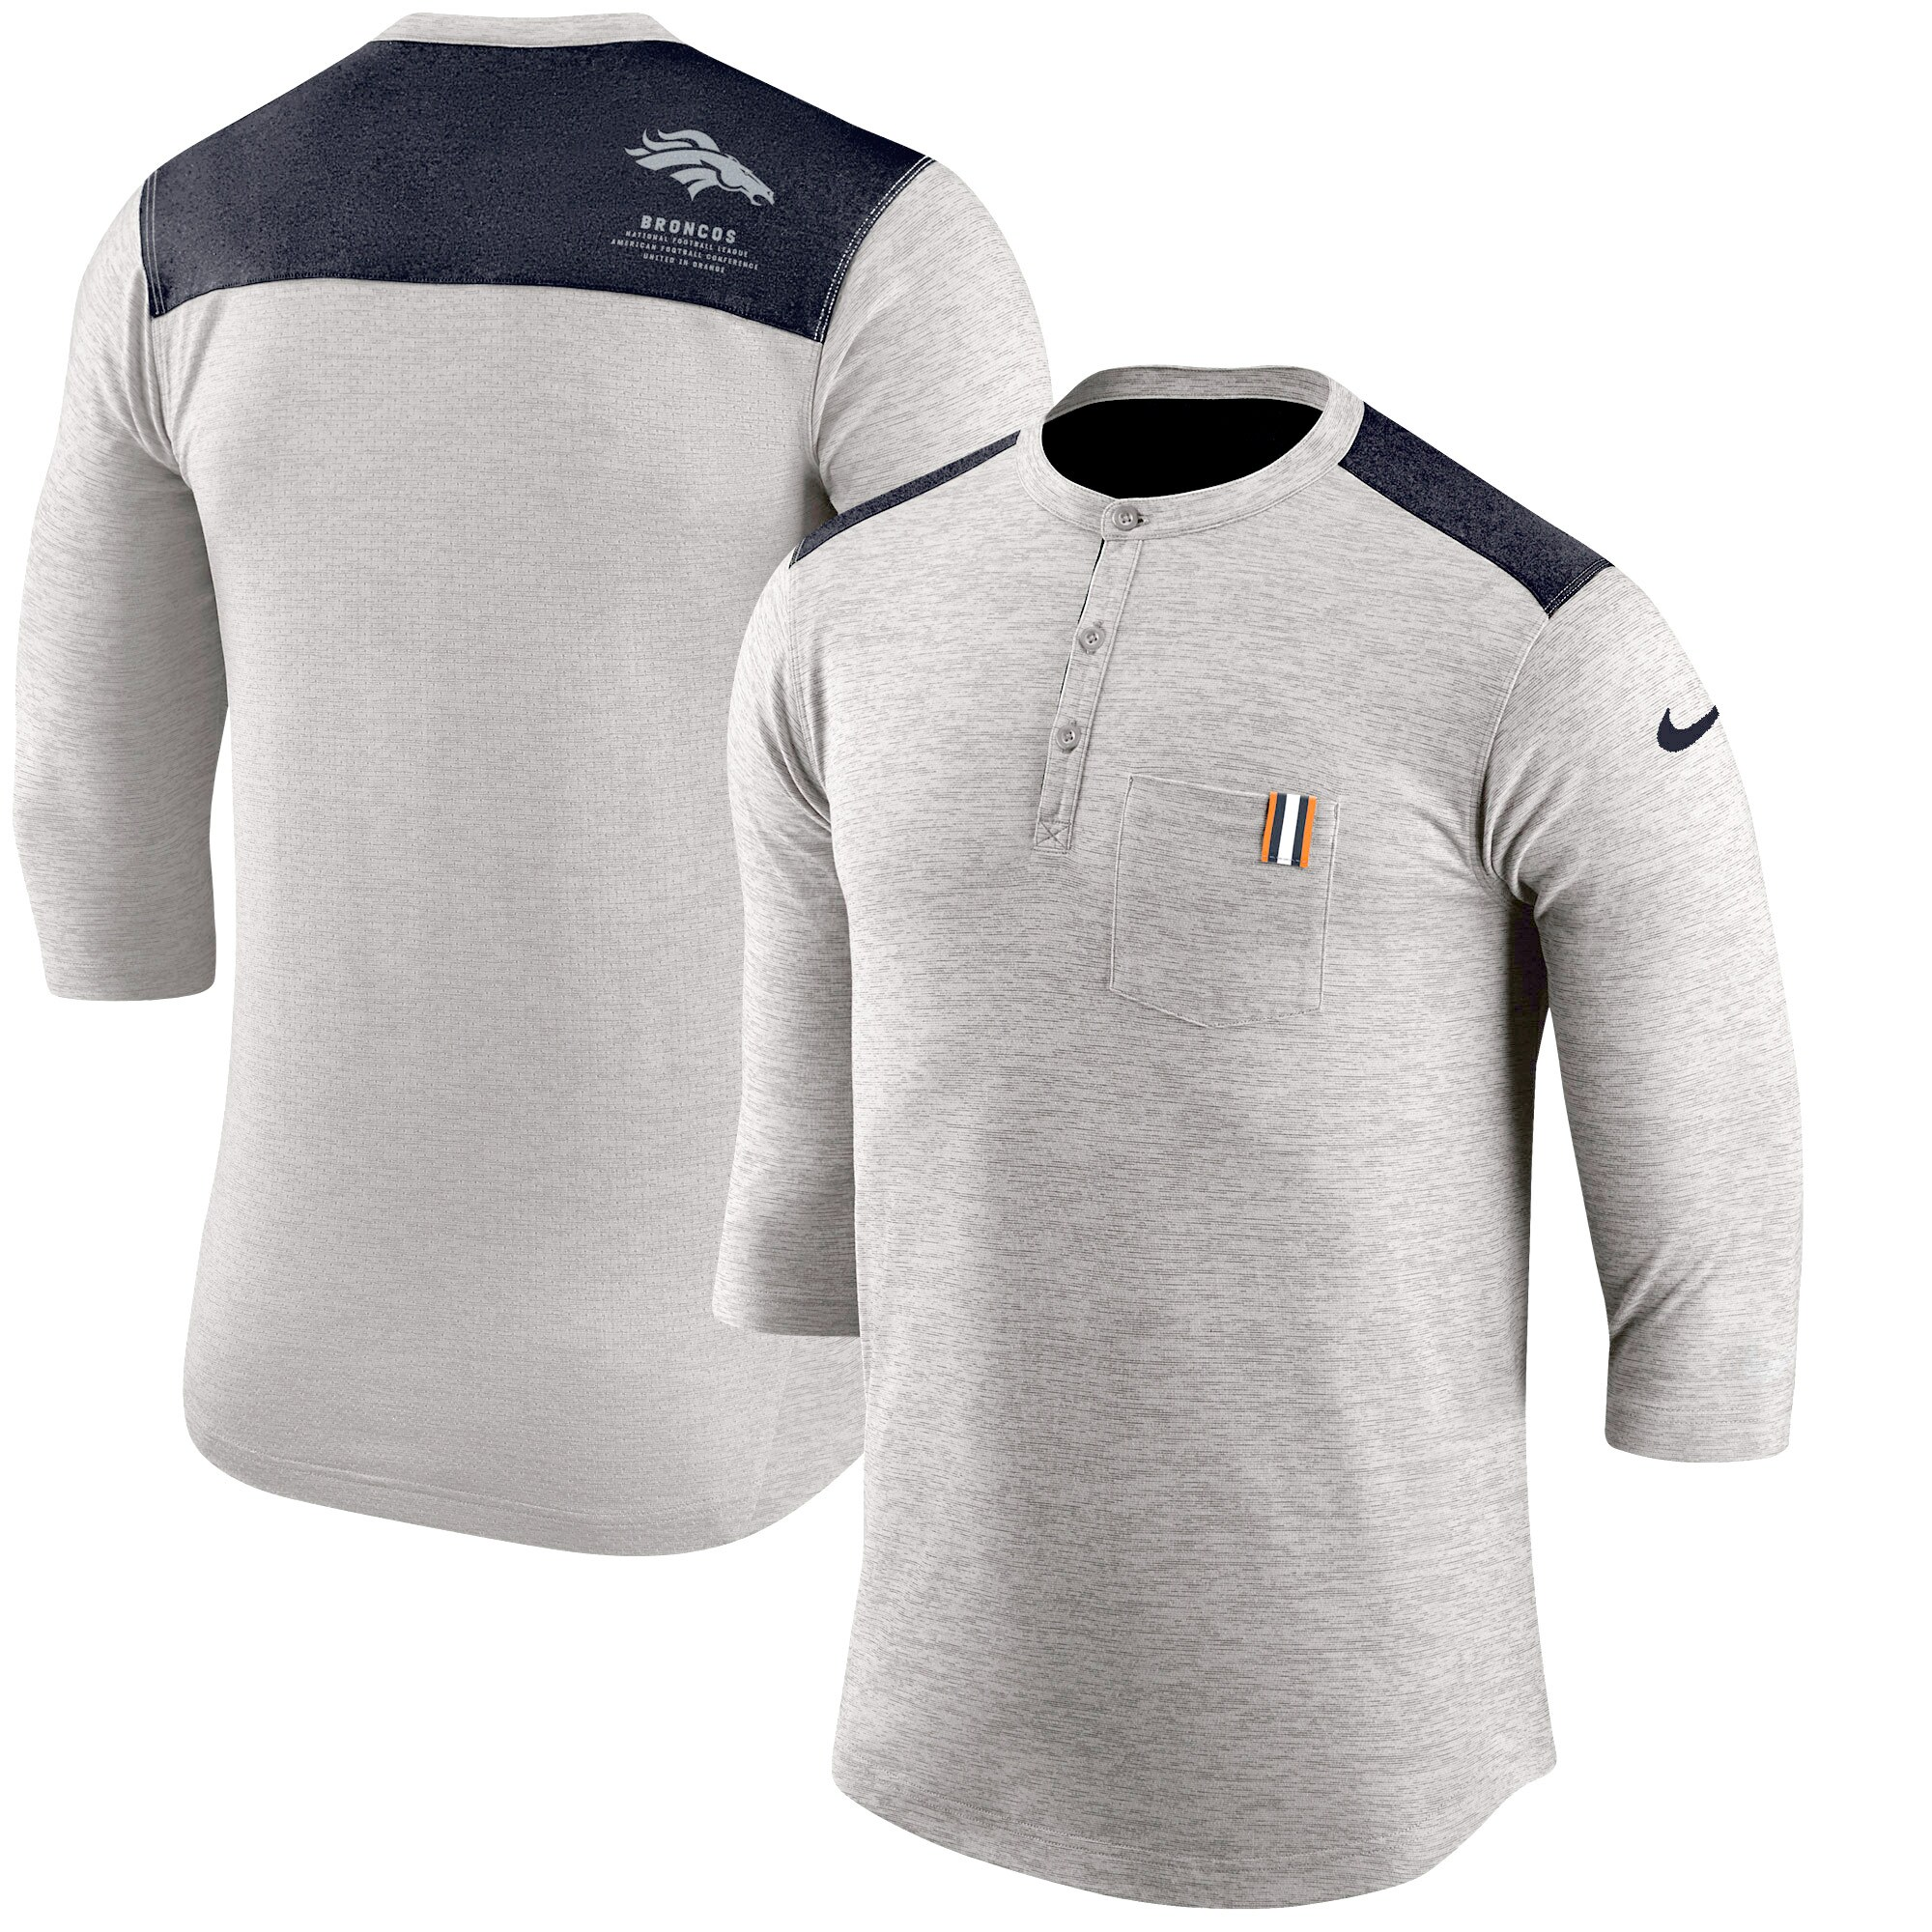 Denver Broncos Nike Performance Henley 3/4-Sleeve T-Shirt - Heathered Gray/Navy